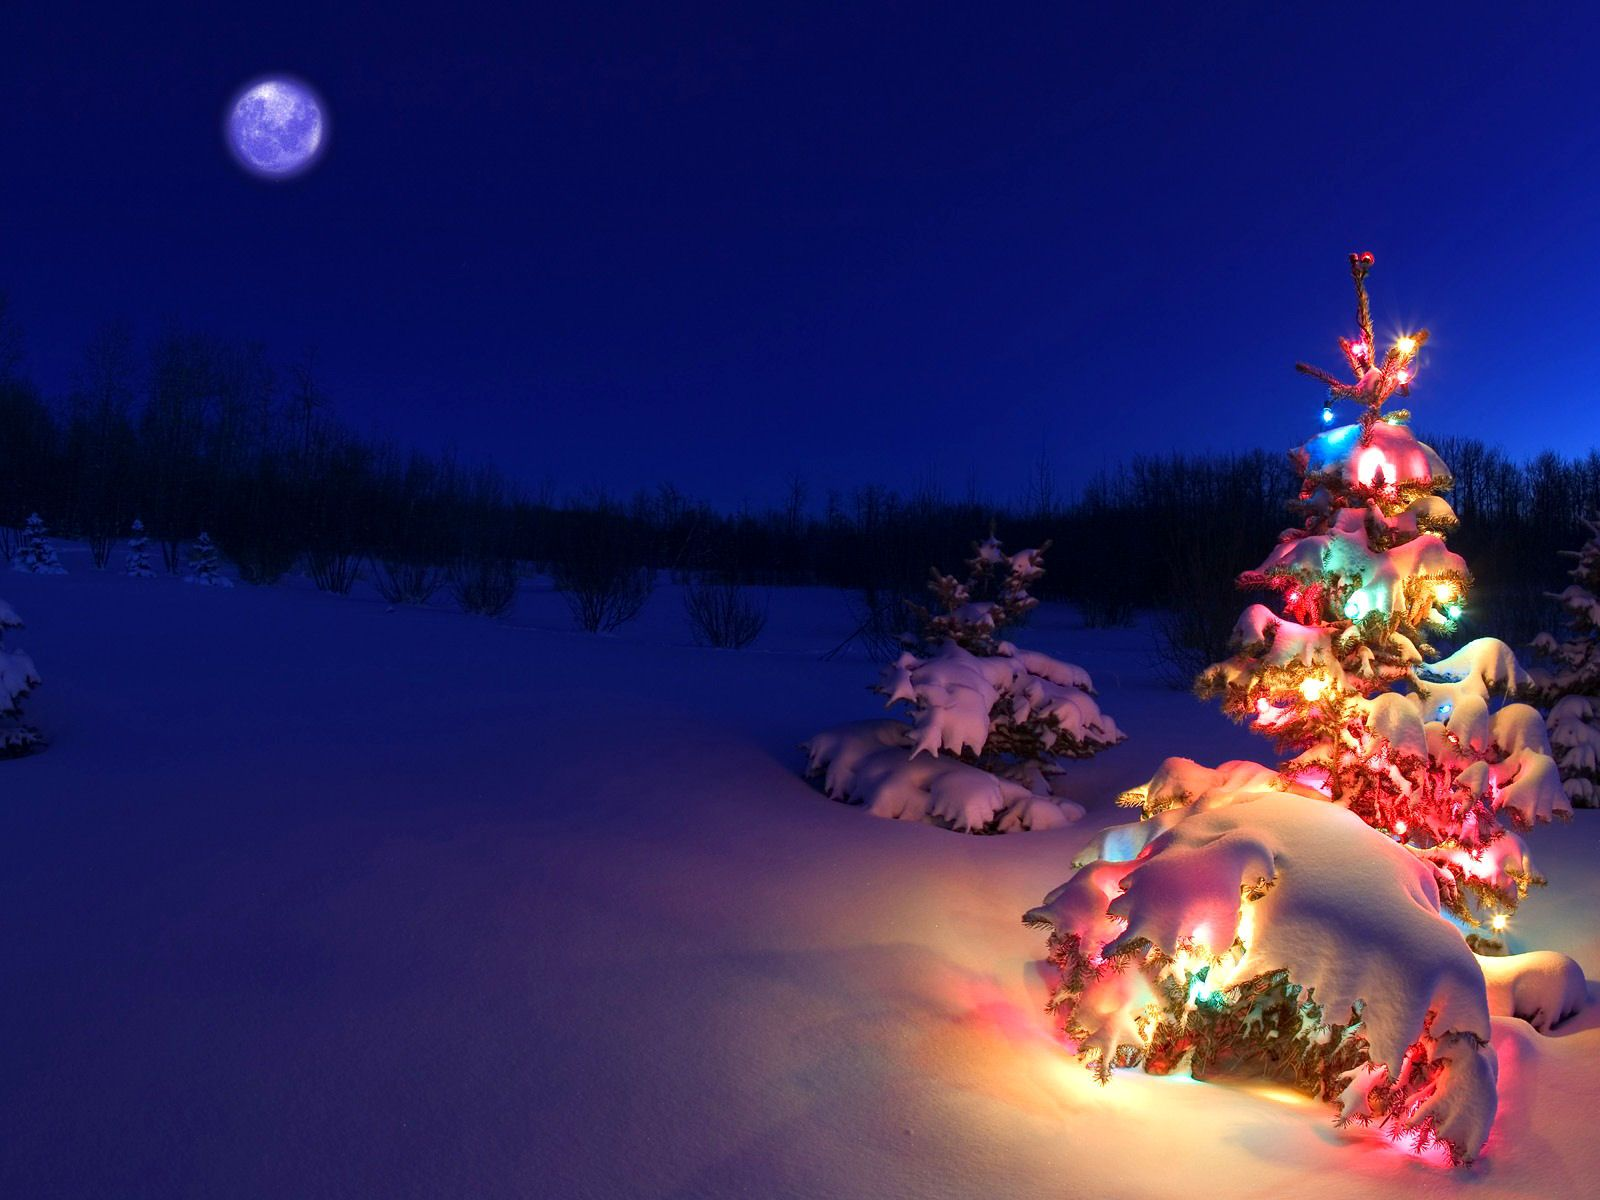 Christmas Lights, Snow, Wallpaper, Christmas Wallpaper, Christmas ...